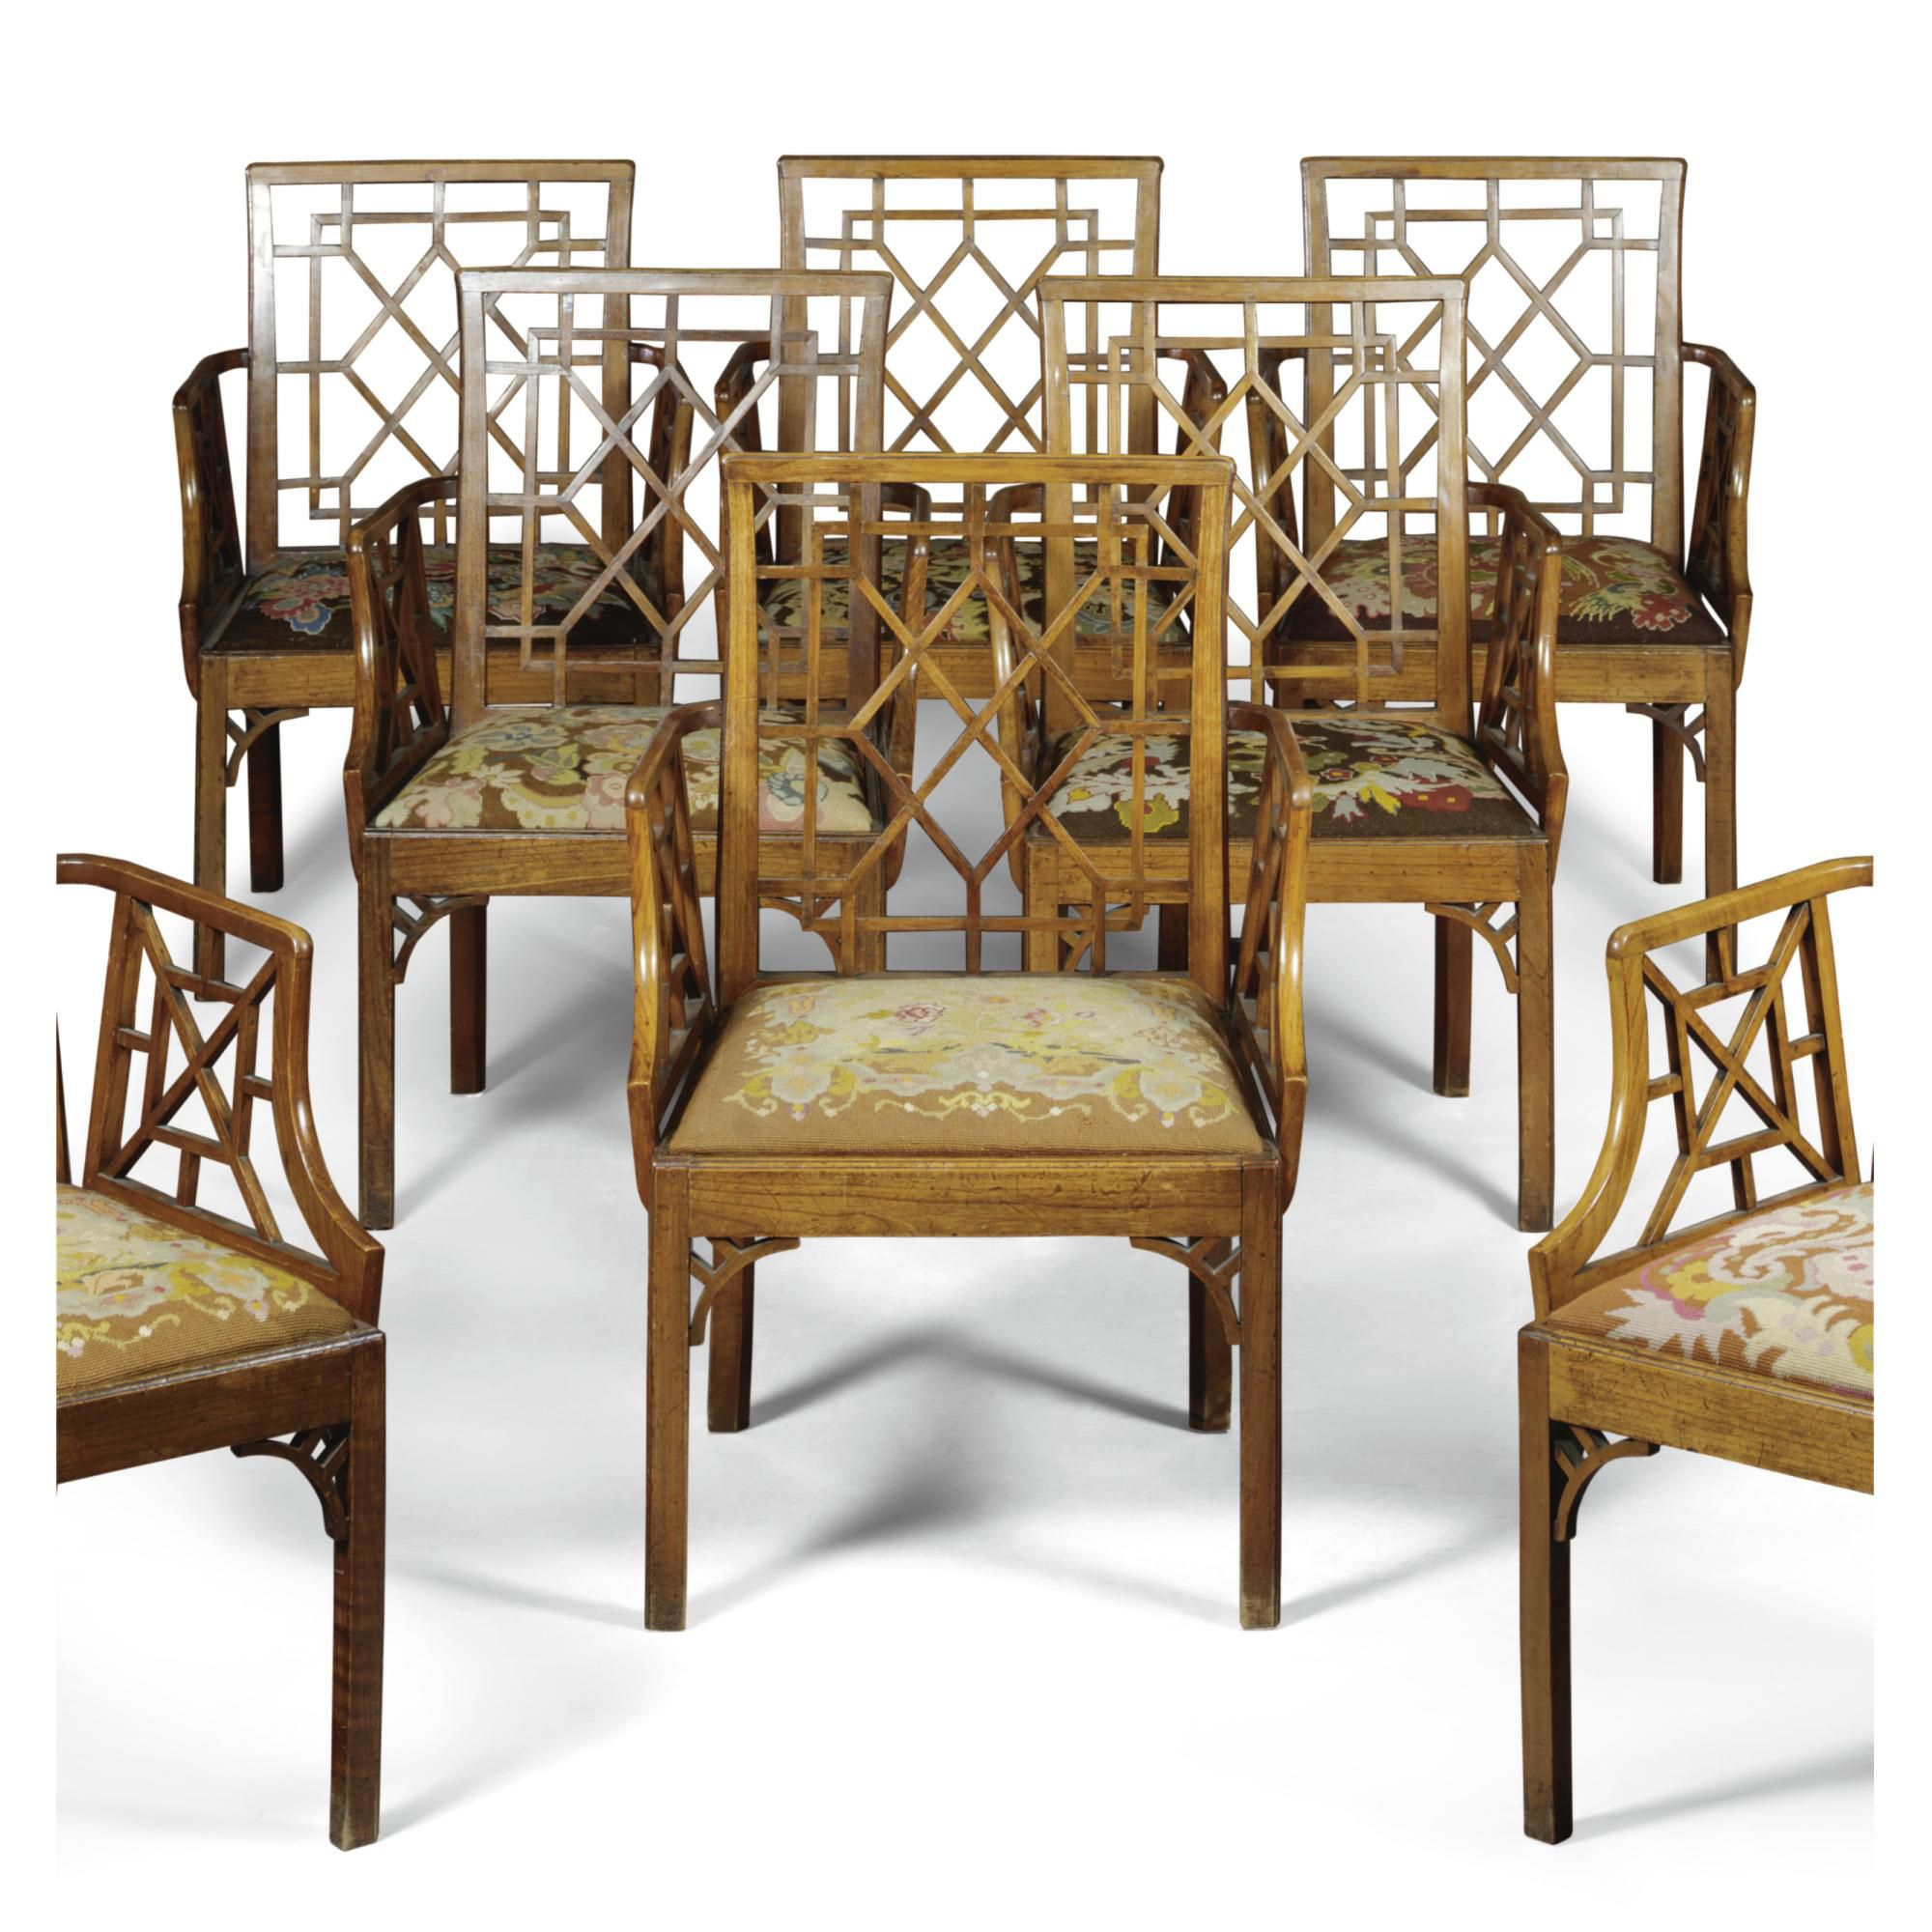 A set of eight George III fruitwood armchairs circa 1760 in Chinese